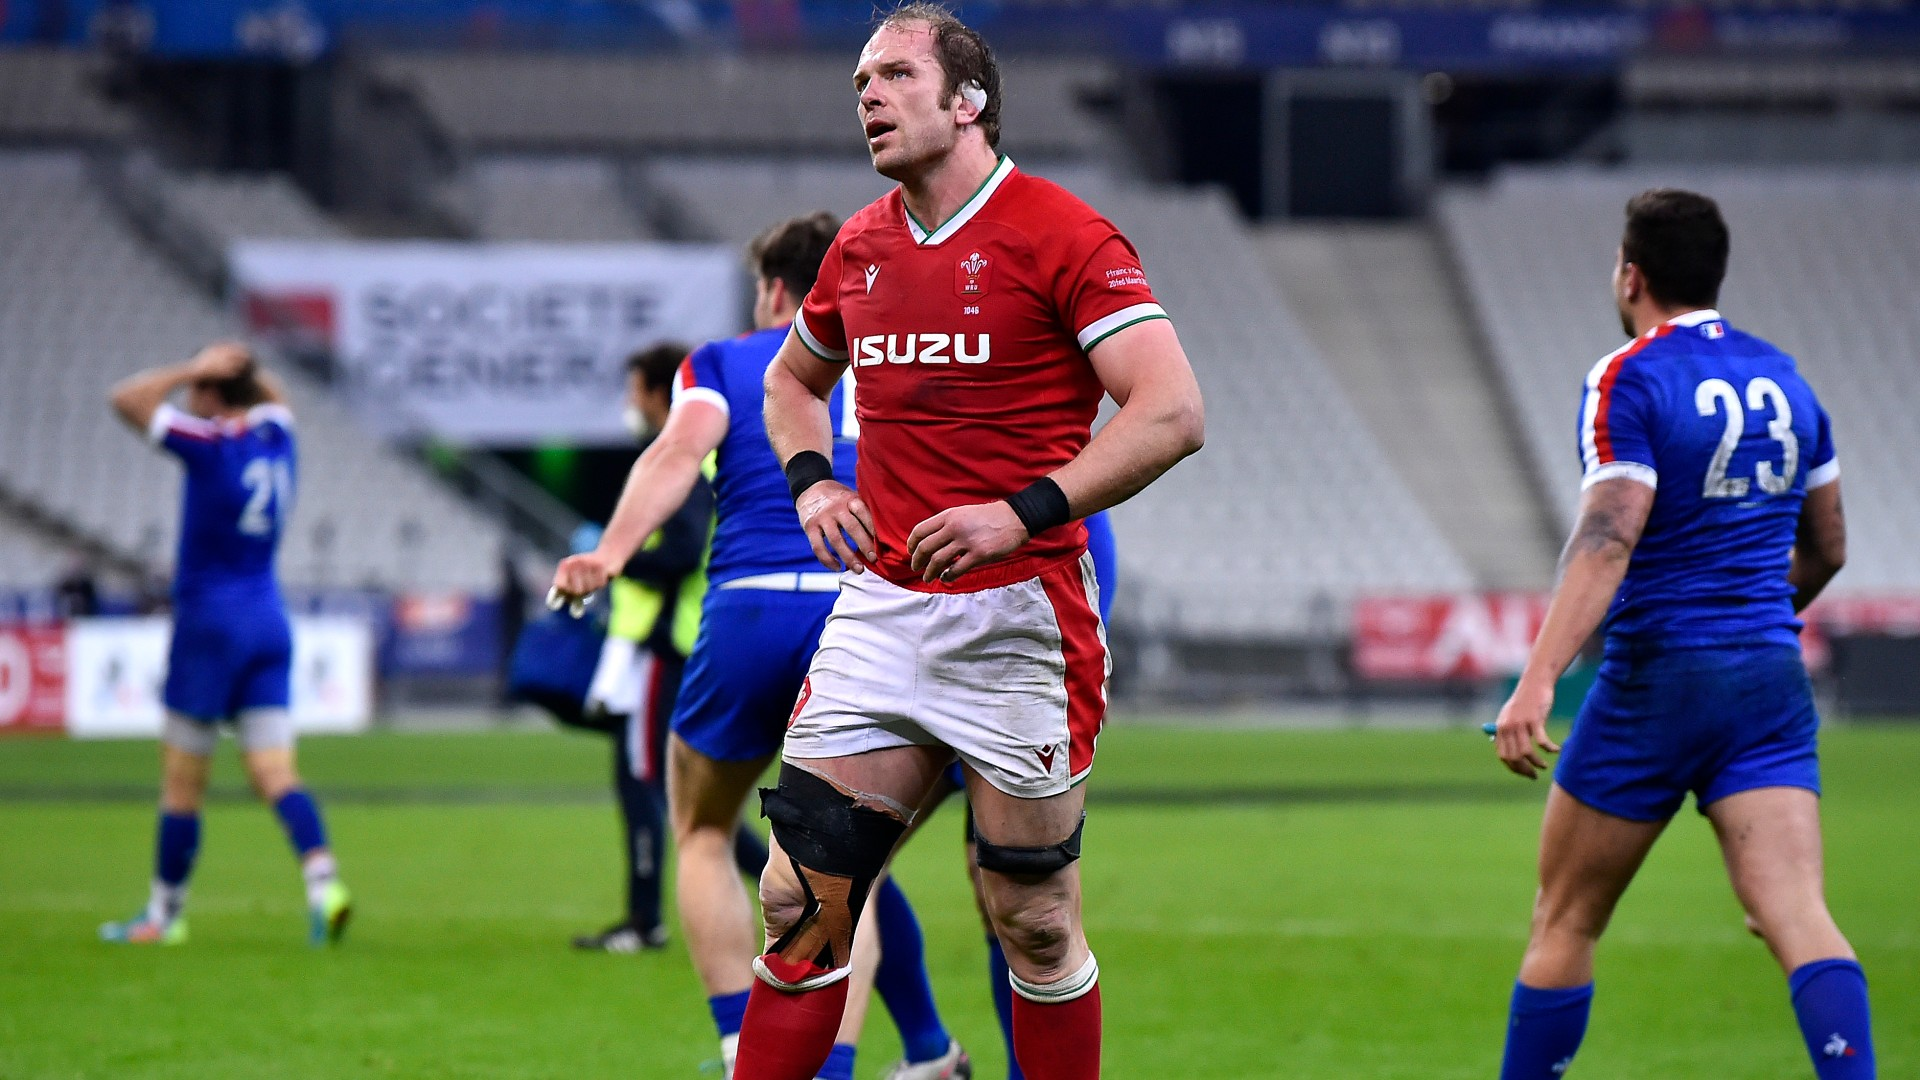 Six Nations 2021: Wales pay the penalty as France dash Grand Slam hopes at the death